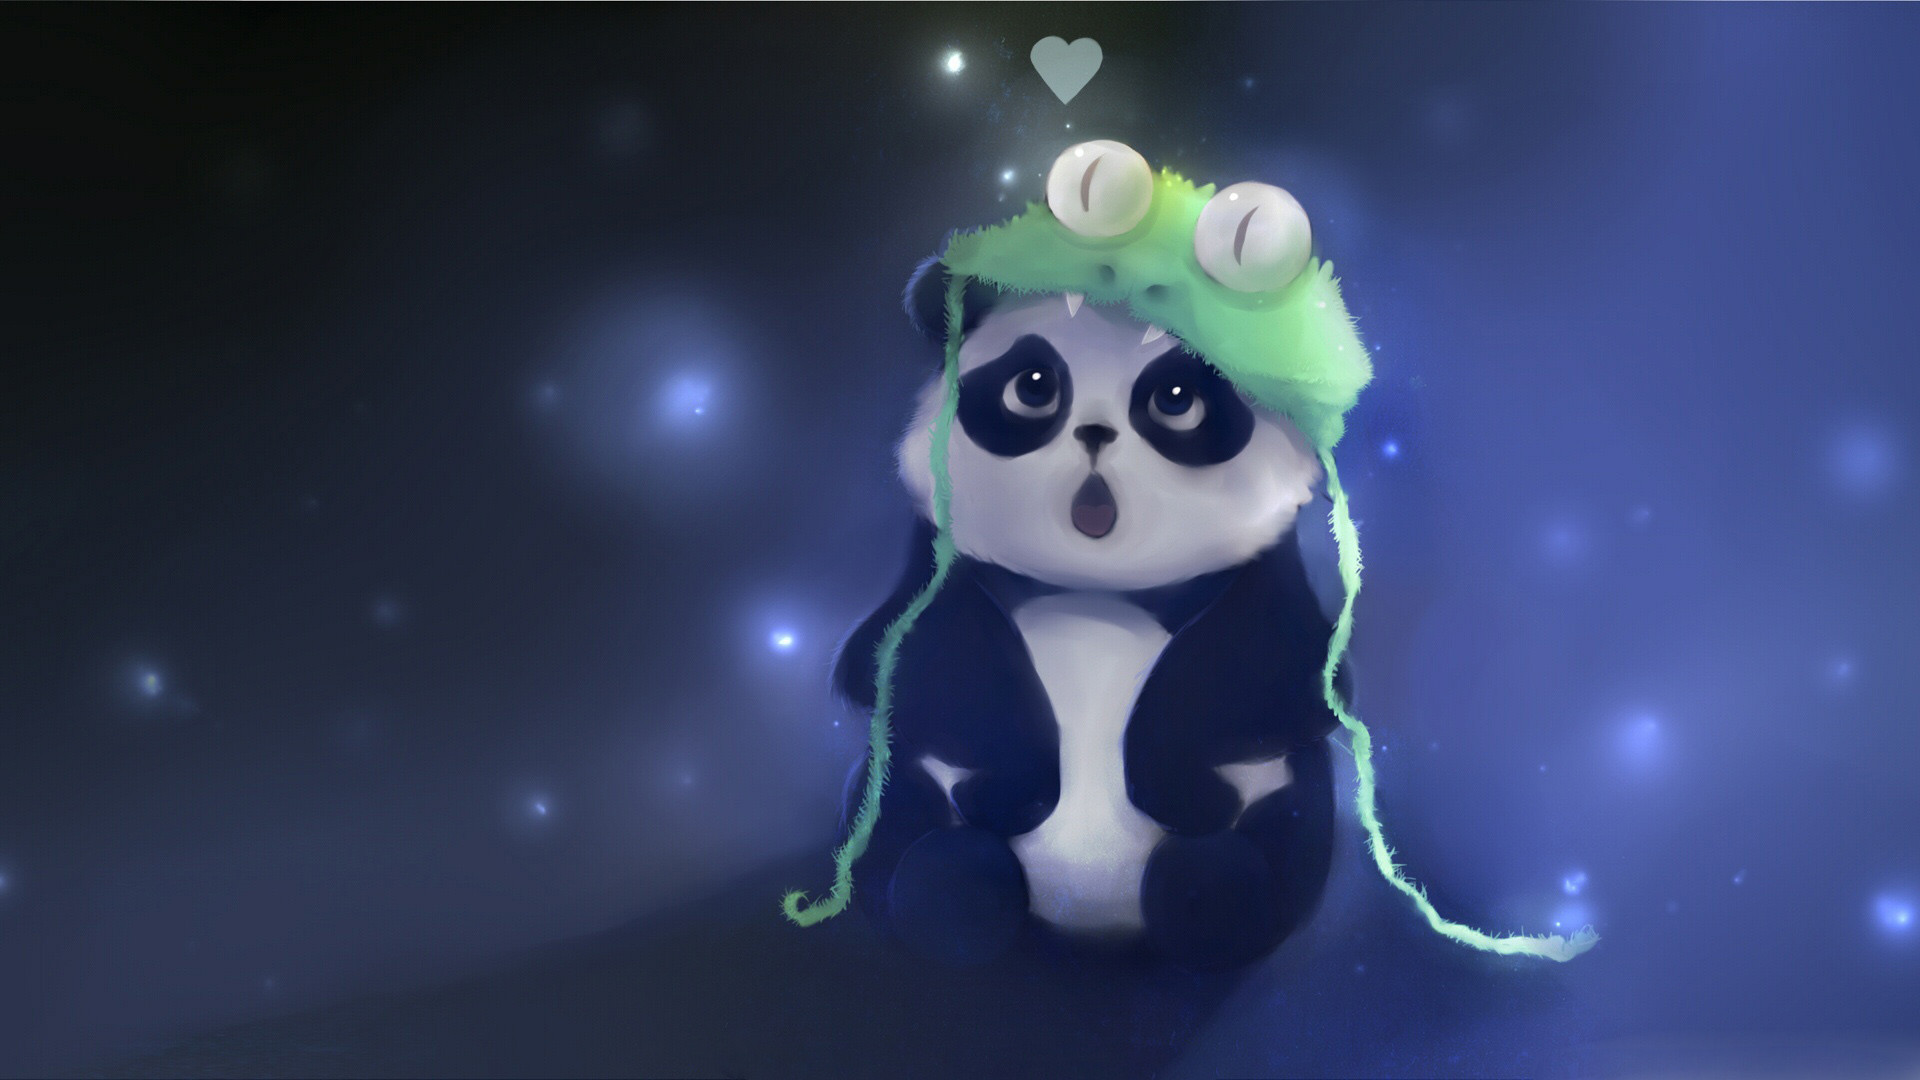 1920x1080 Desktop Backgrounds  Cute Awesome Cute Desktop Wallpaper Cute  Desktop Wallpaper Cute Desktop